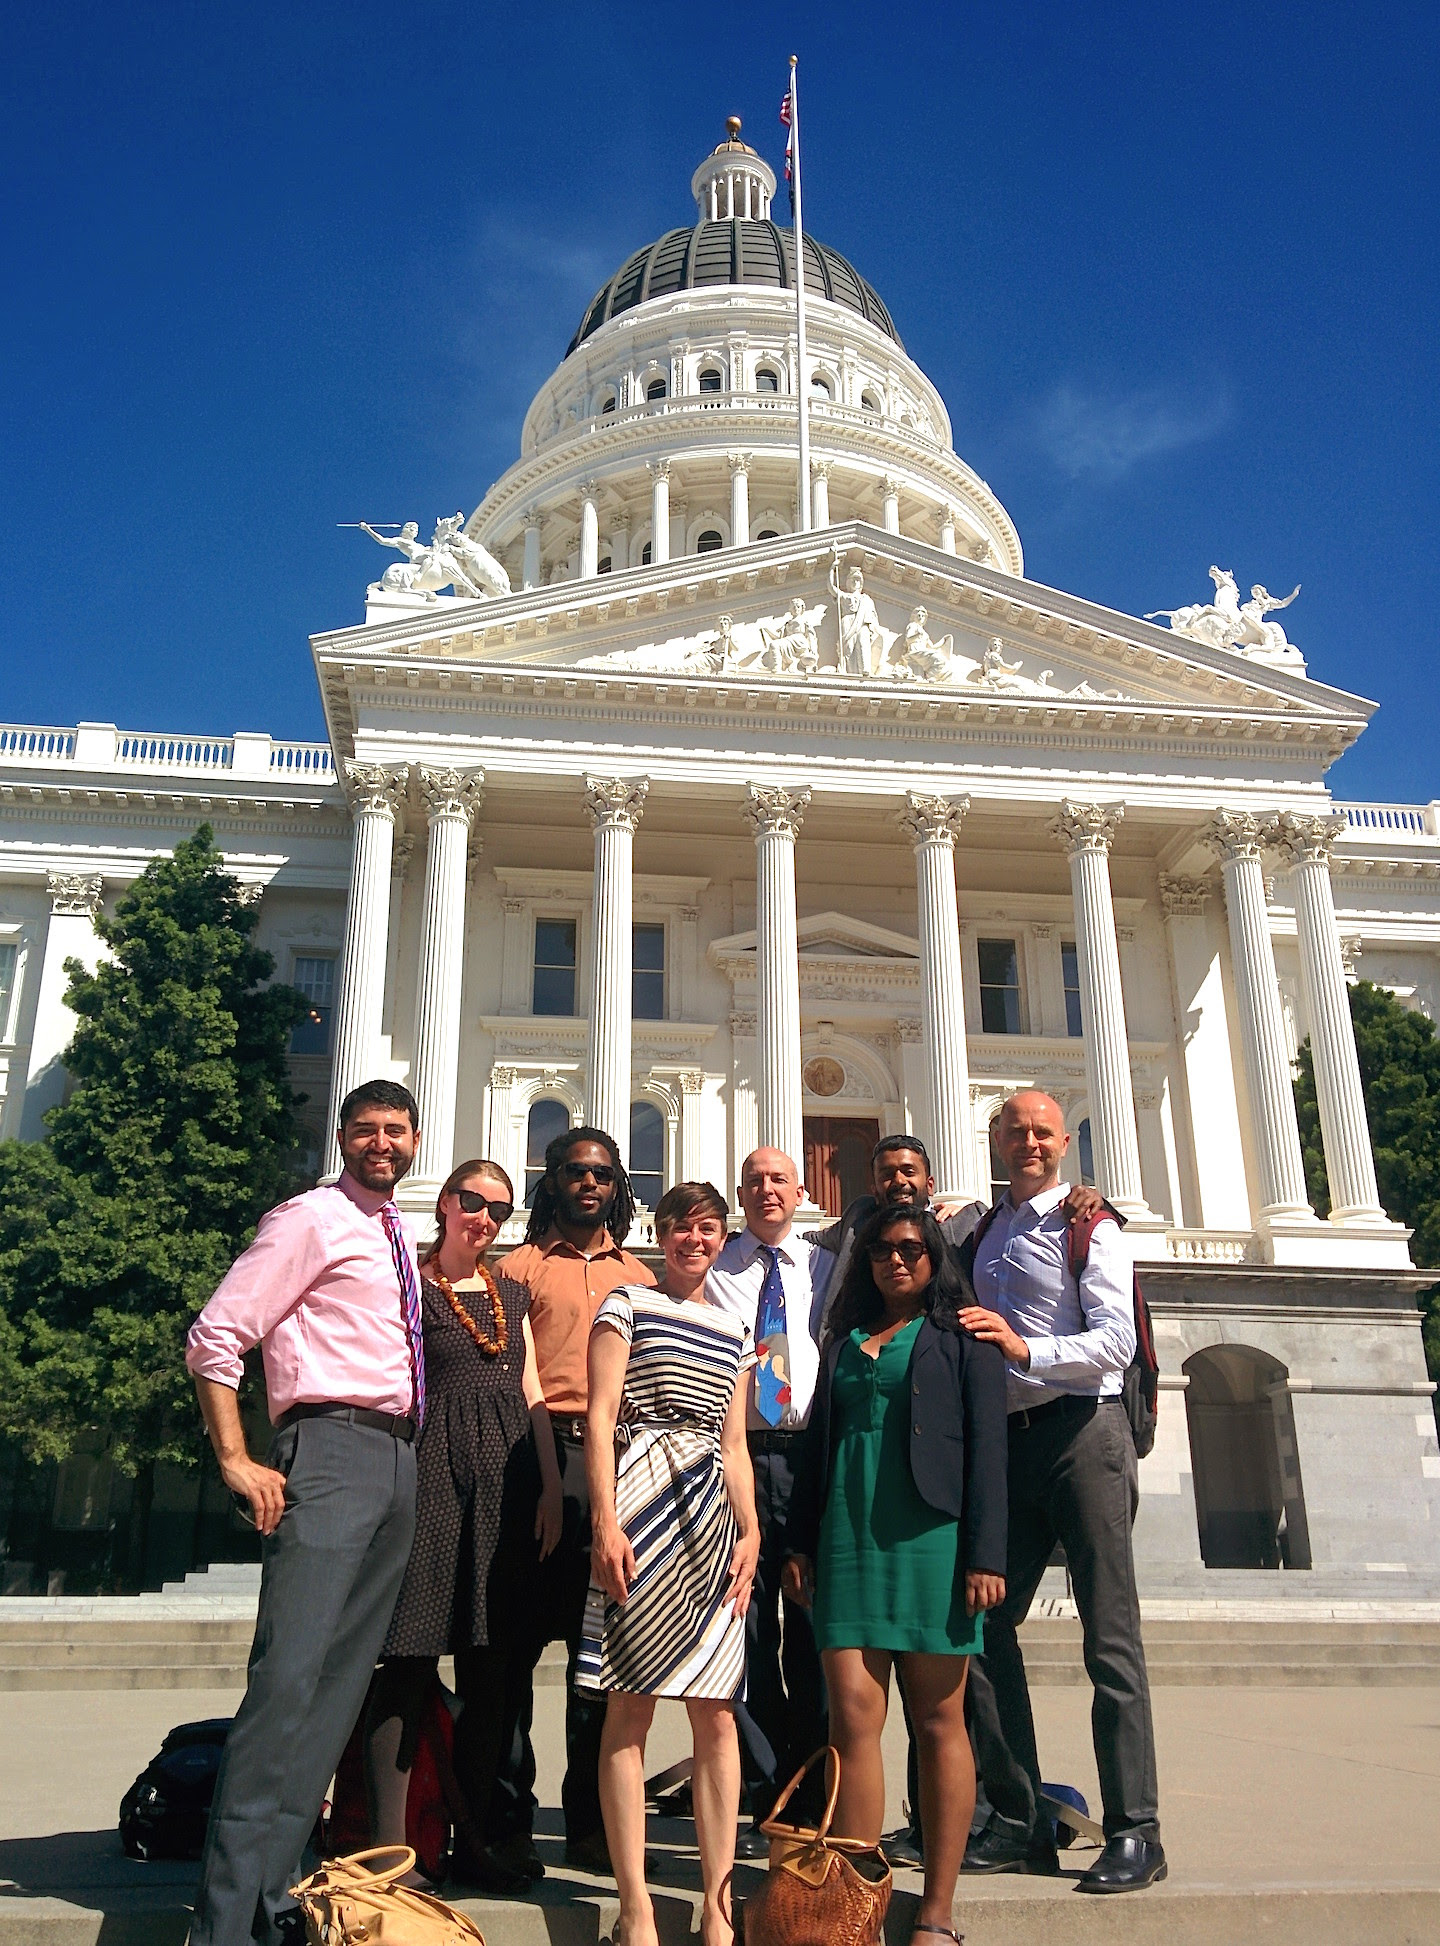 Part of the team that attended committee hearings in Sacramentoto advocate for workplace democracy!